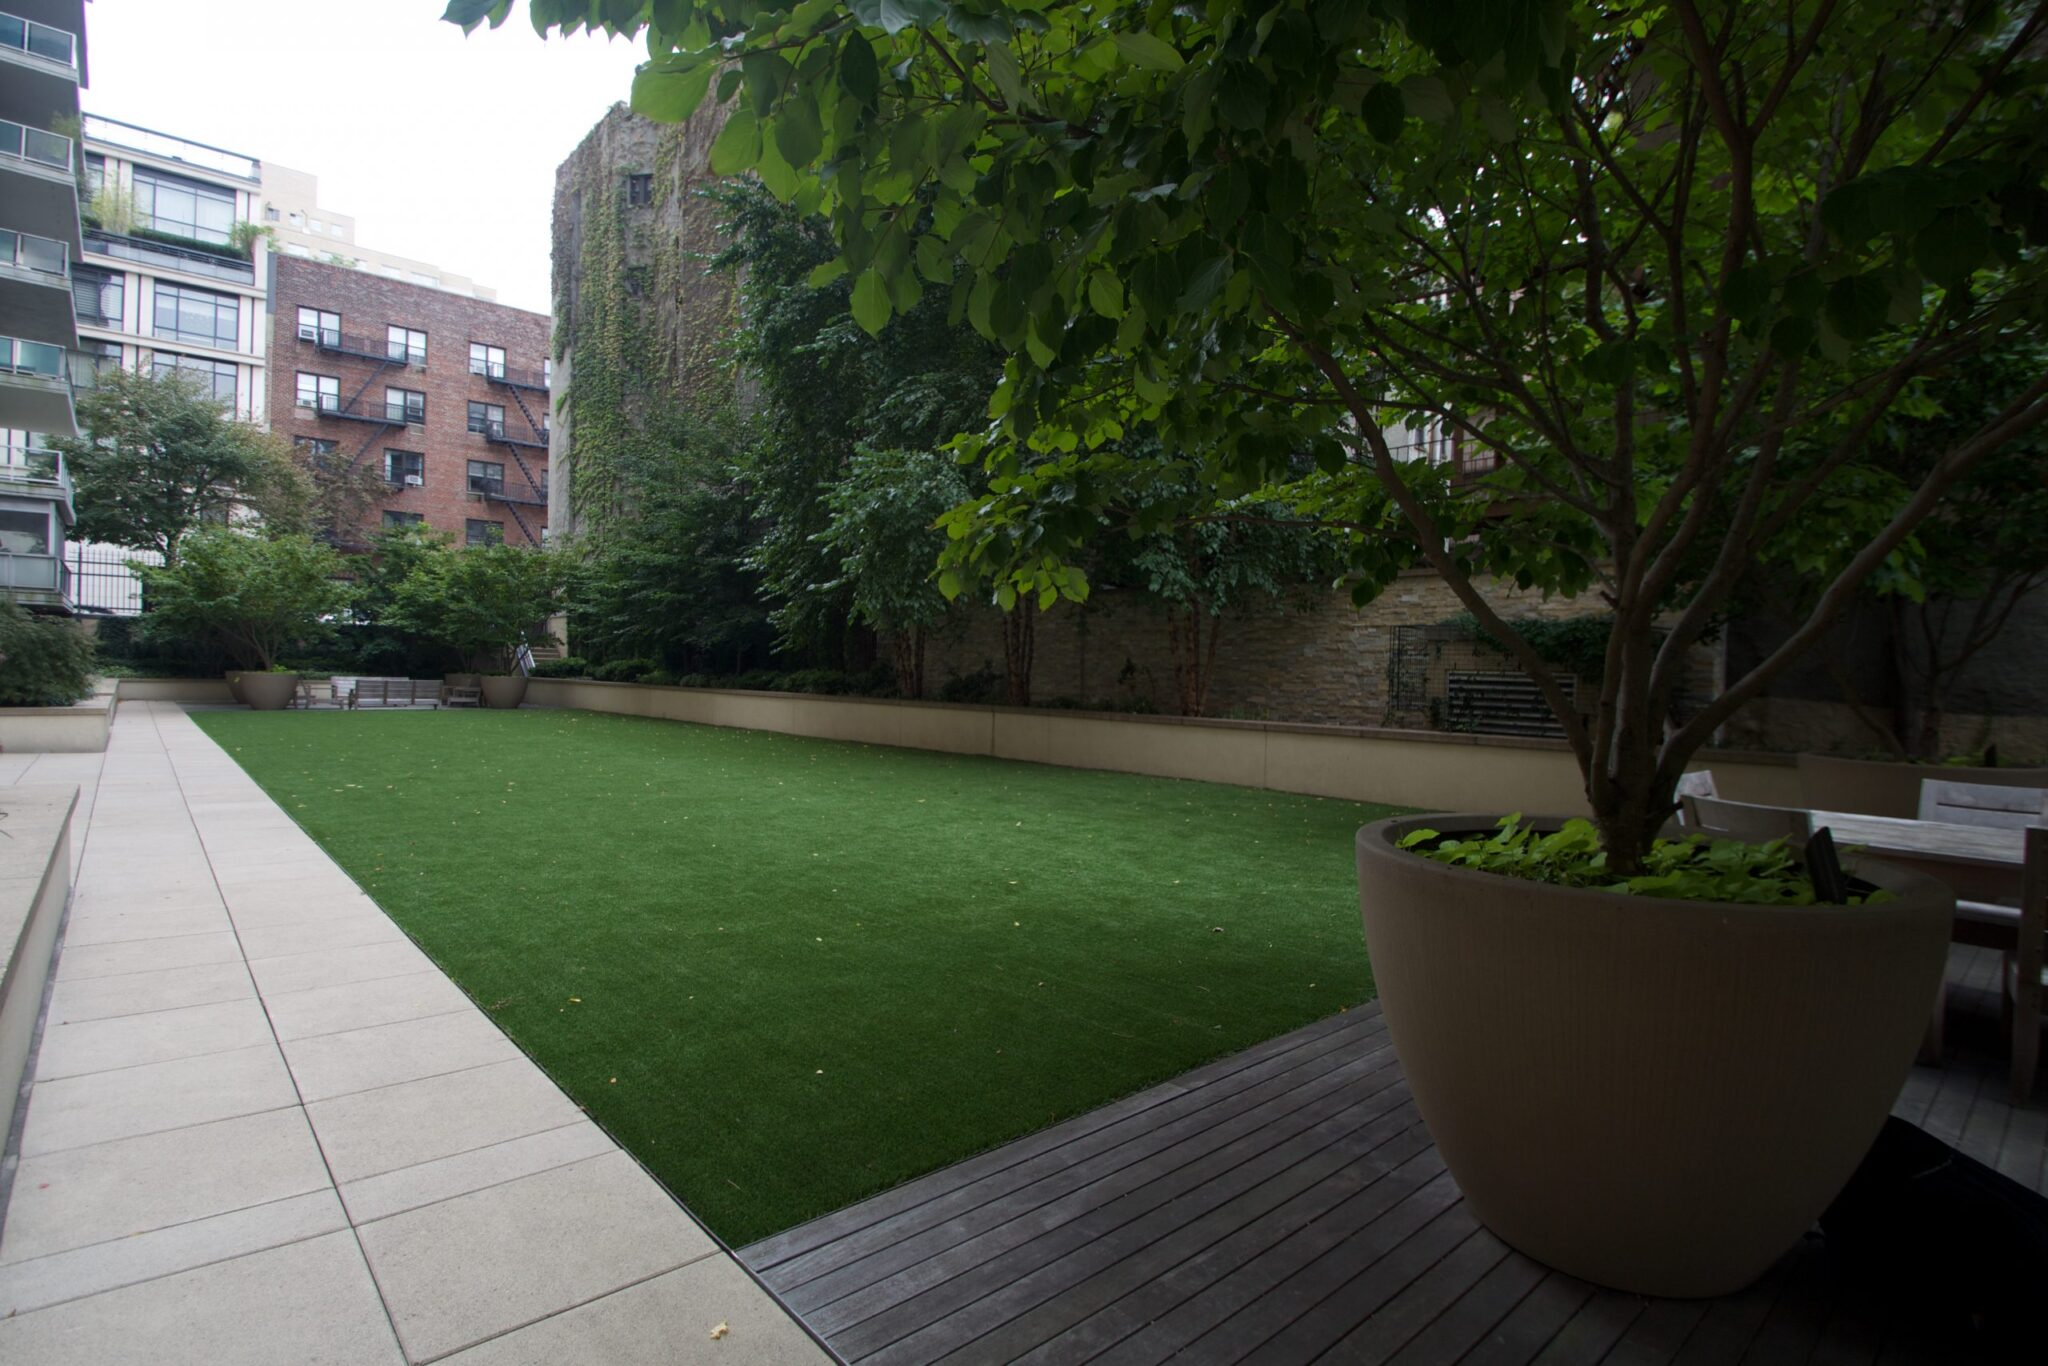 commercial turf, artificial grass